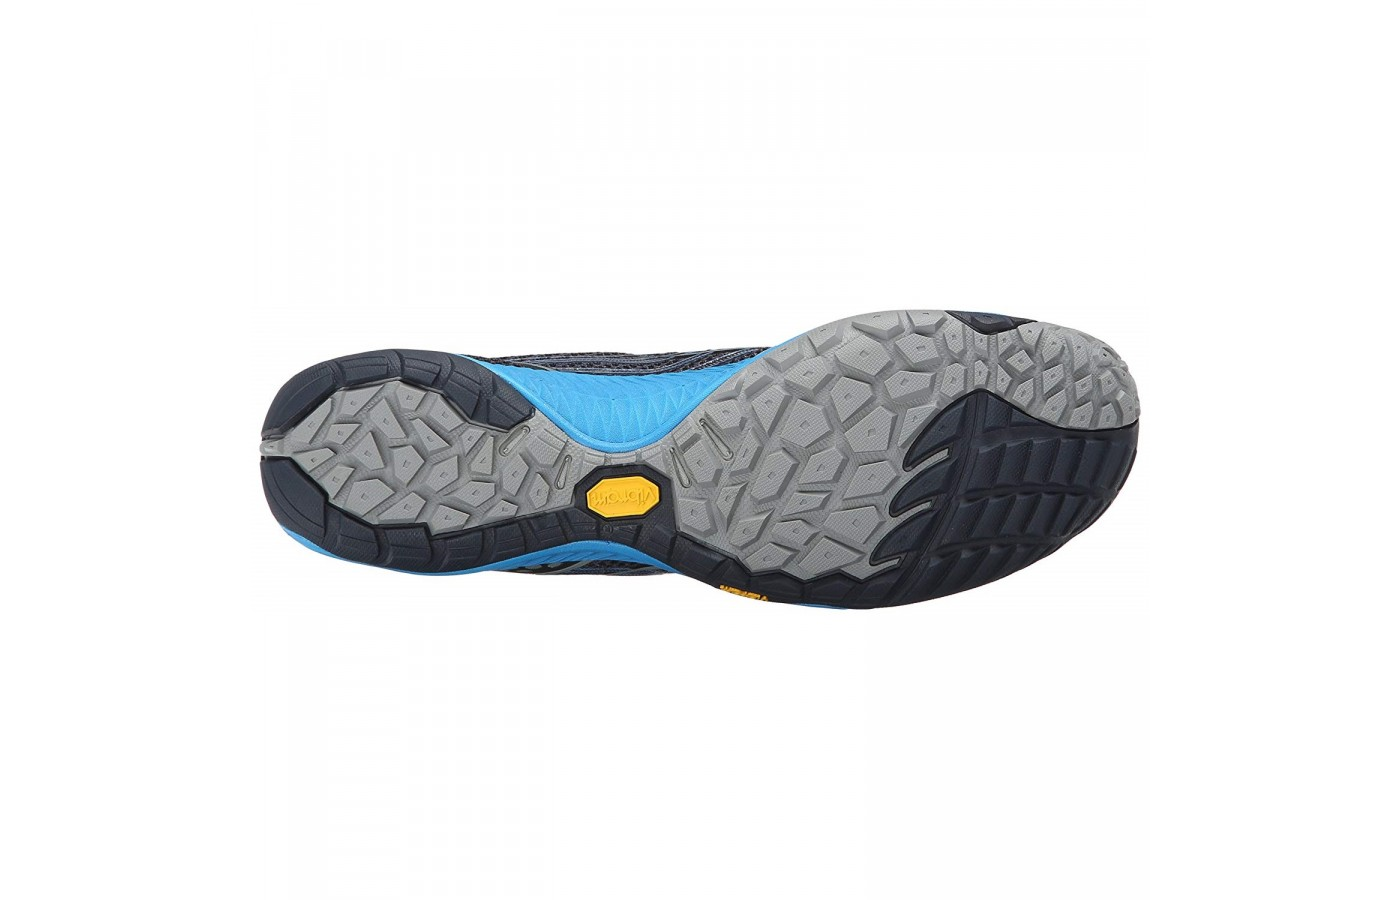 The Merrell Trail Glove 3 offers a Vibram outsole for protection and stickiness when the runner needs it.